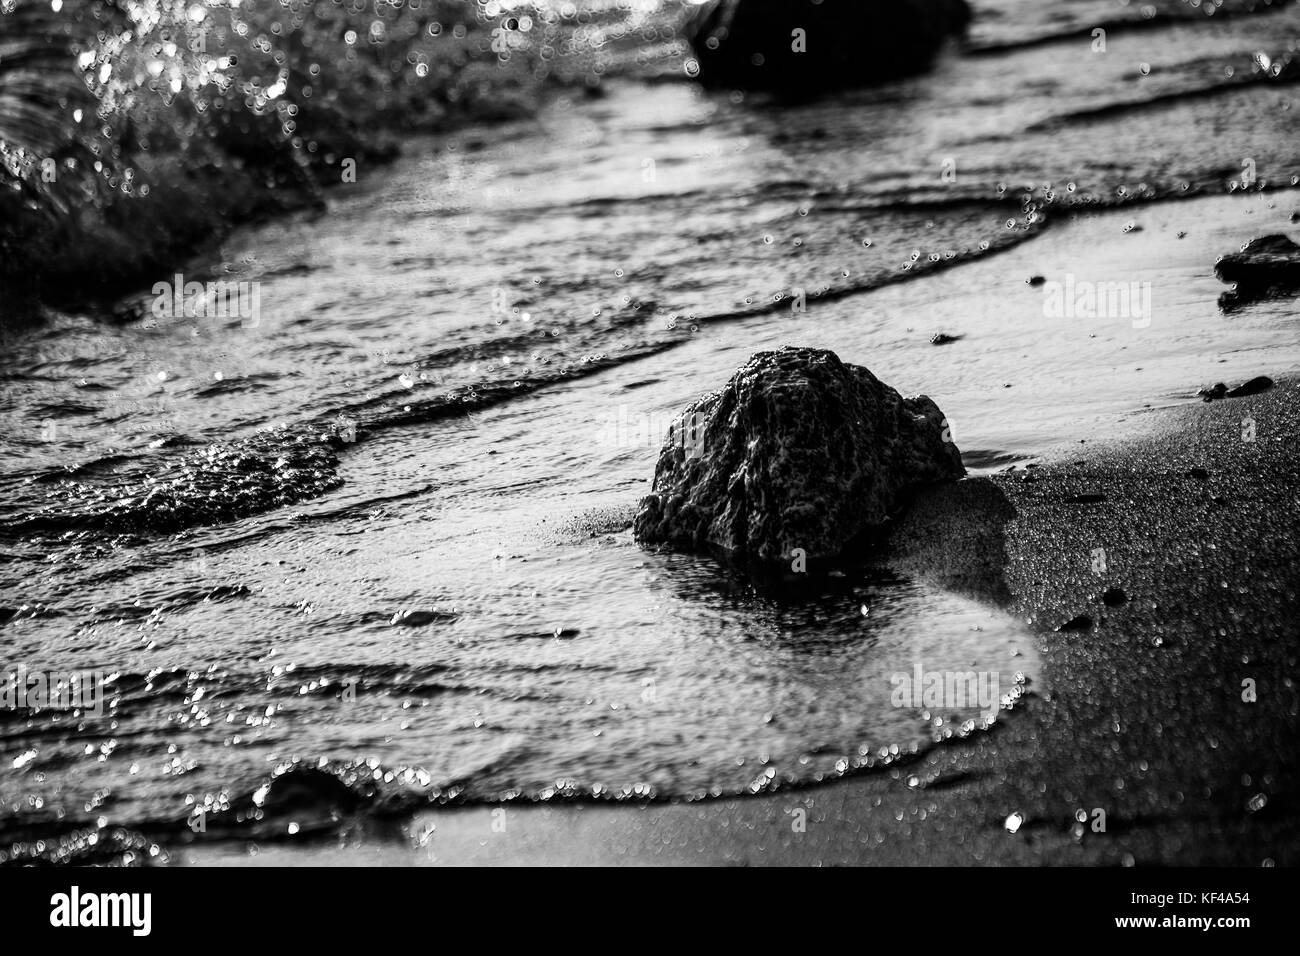 A close view of a lake shore, with details of water bubbles and stones and pebble on the sand - Stock Image